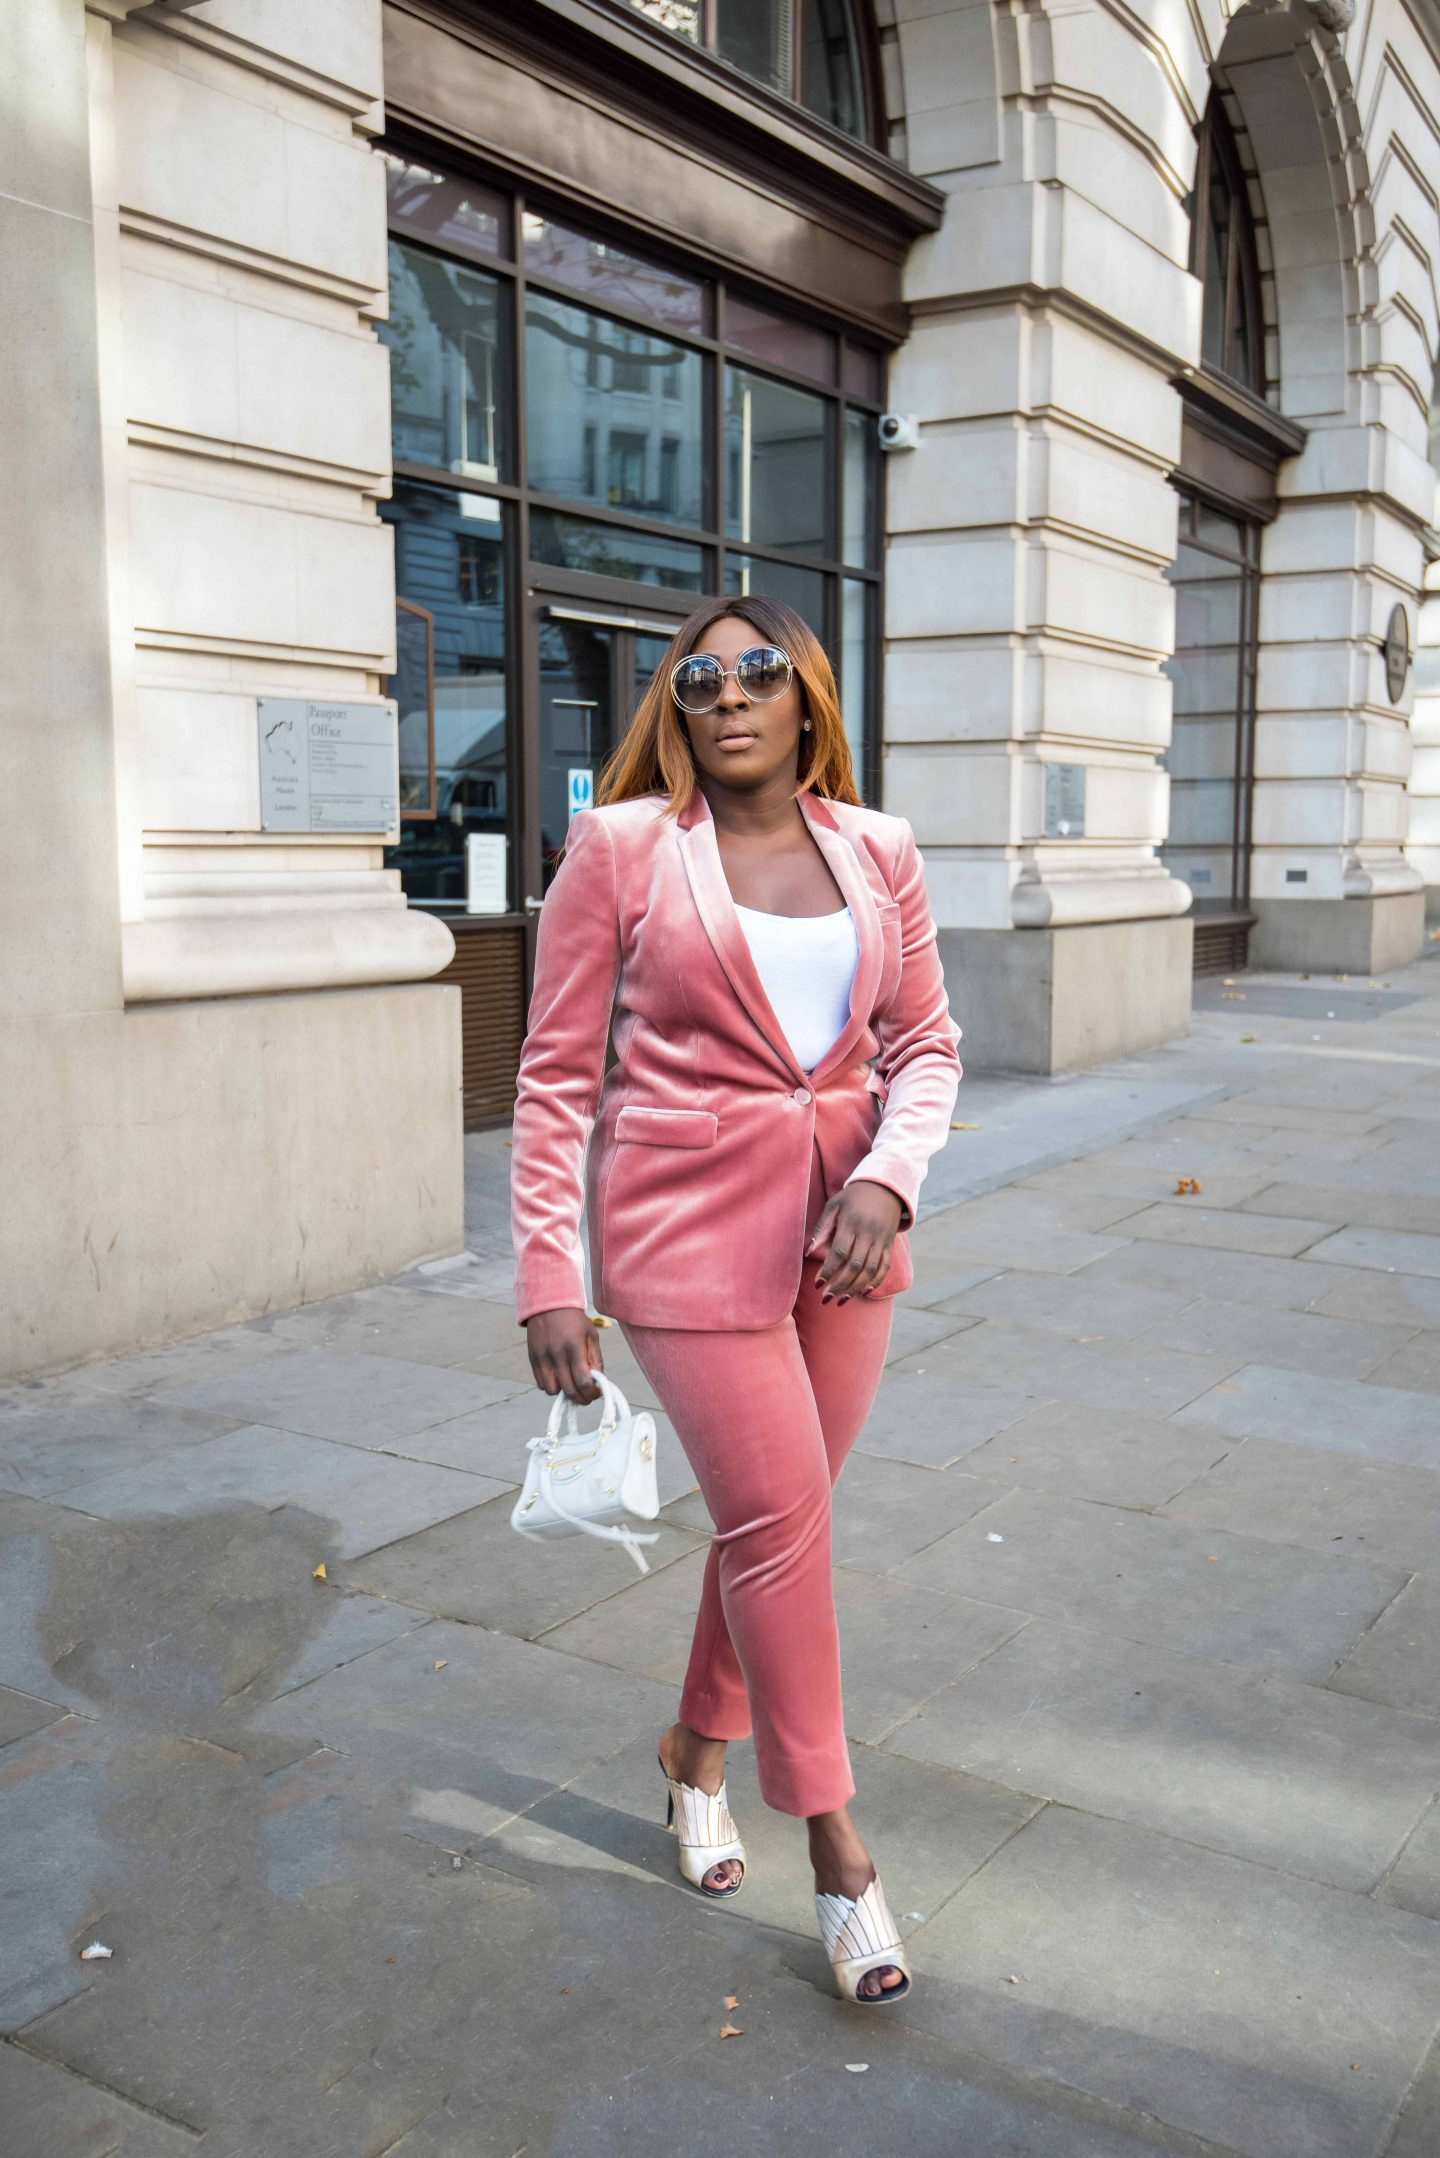 How to Style the Balenciaga Mini Bag 6 - belenciaga city bag -top shop velvet suit - malone souliers donna metalic mules - Style and the Sass